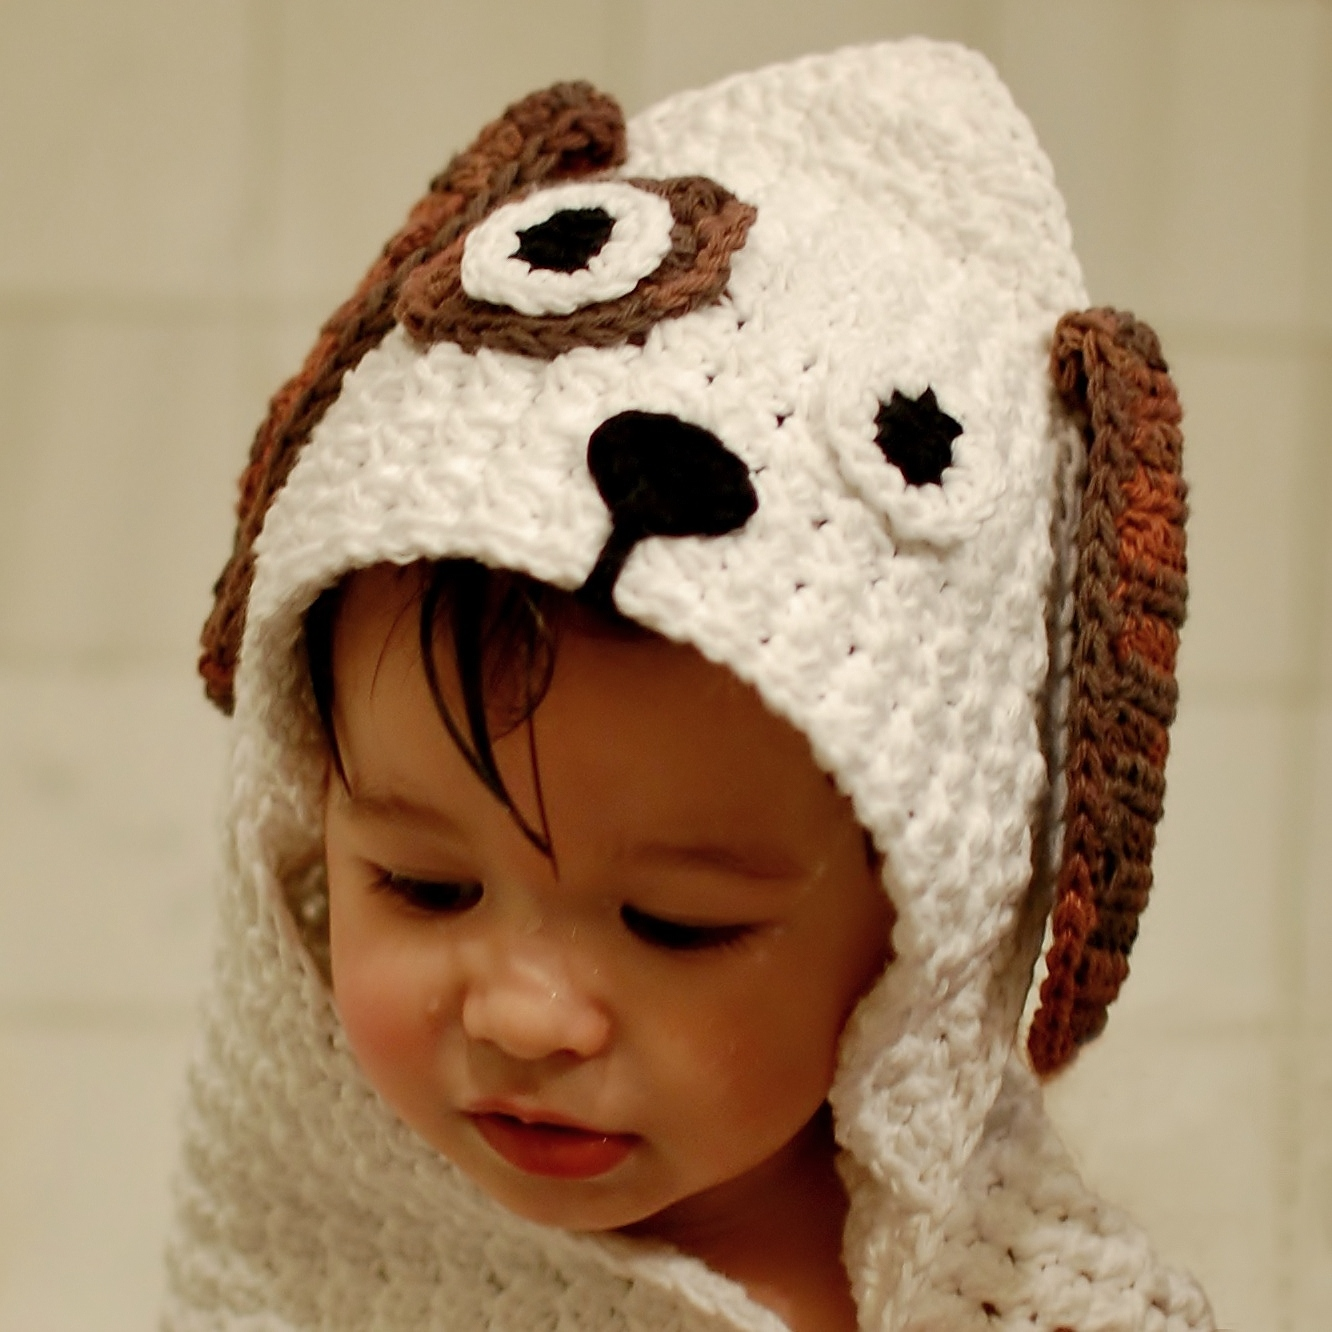 Crochet Pattern Dog Hooded Baby Towel Also Makes A Great Hooded